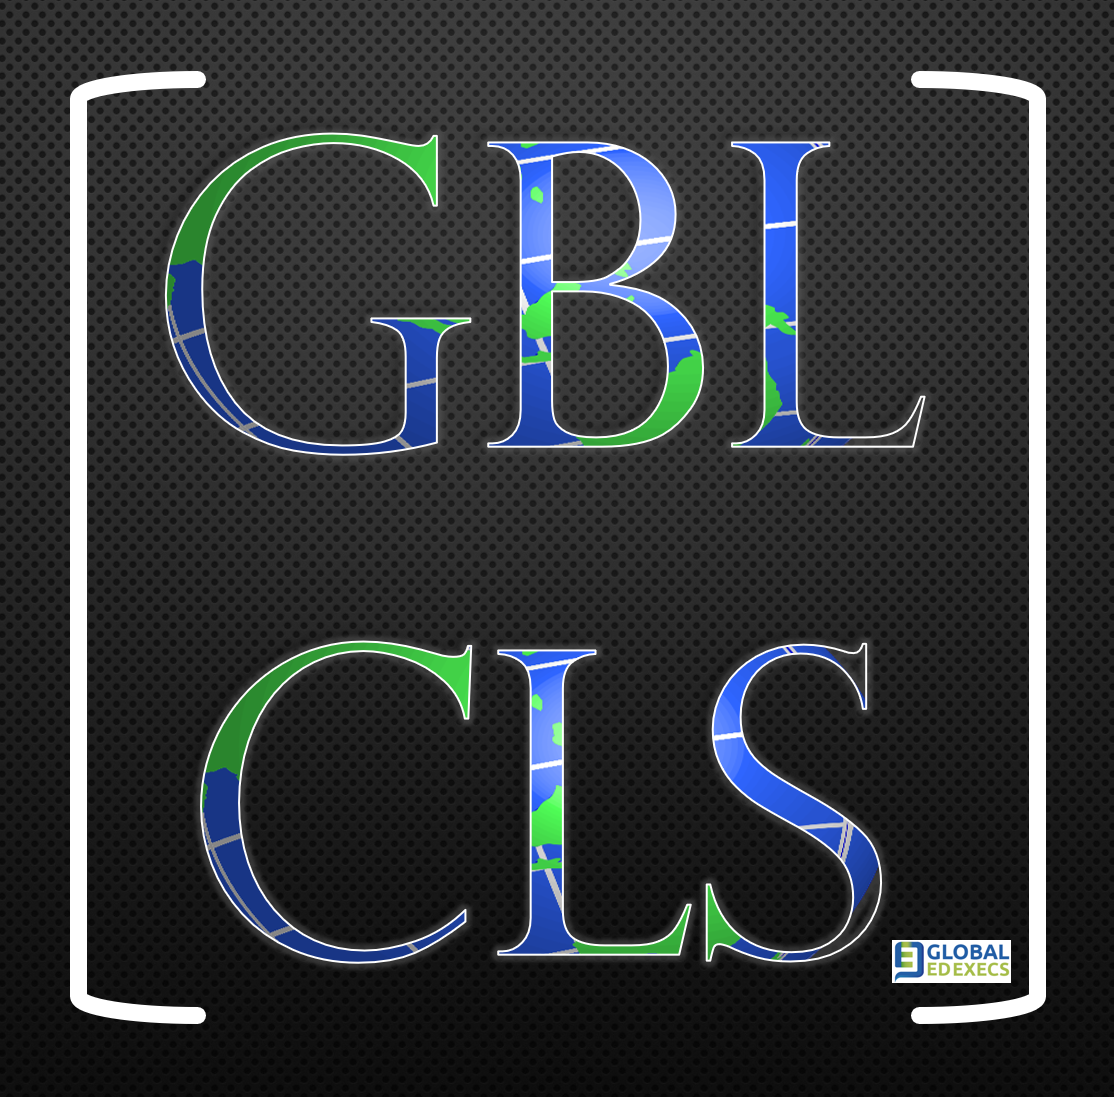 GBL CLS w GEE logo.PNG